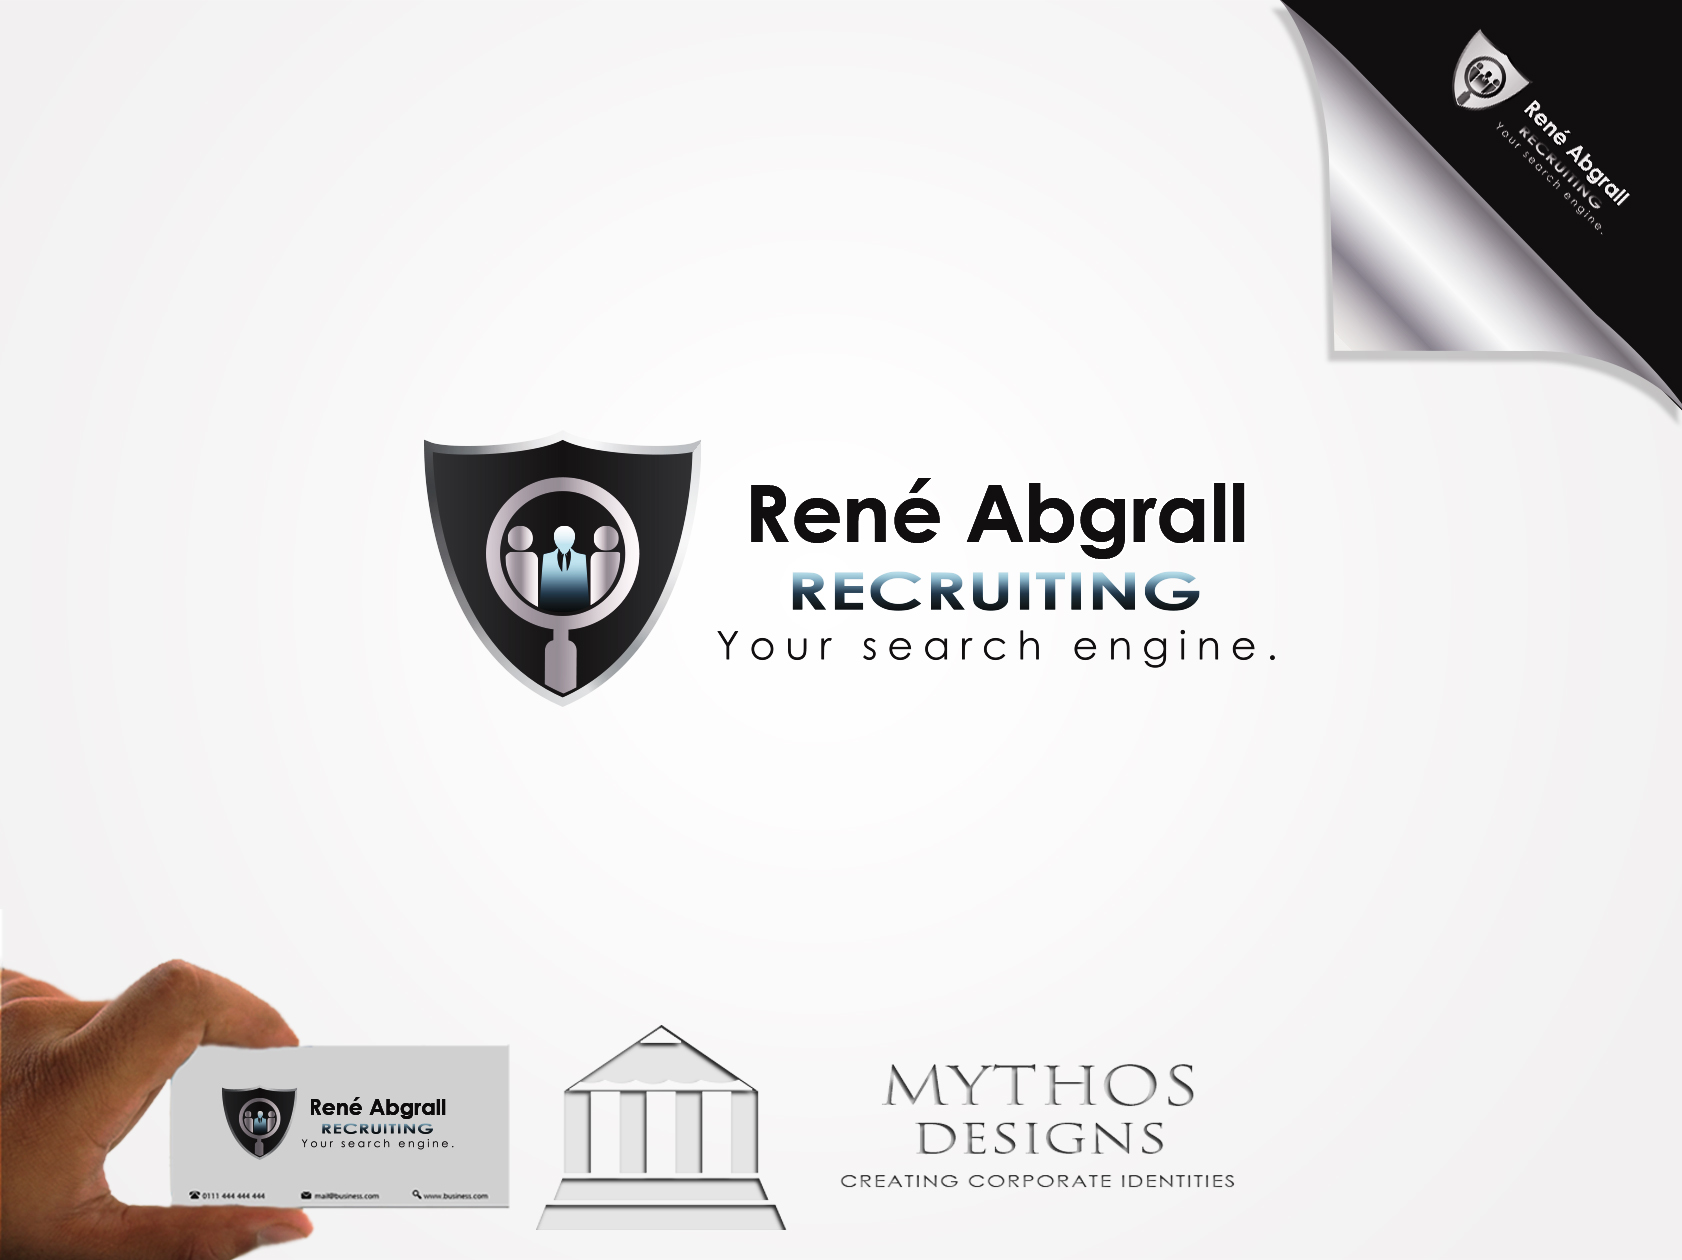 Logo Design by Mythos Designs - Entry No. 35 in the Logo Design Contest Artistic Logo Design for René Abgrall Recruiting.